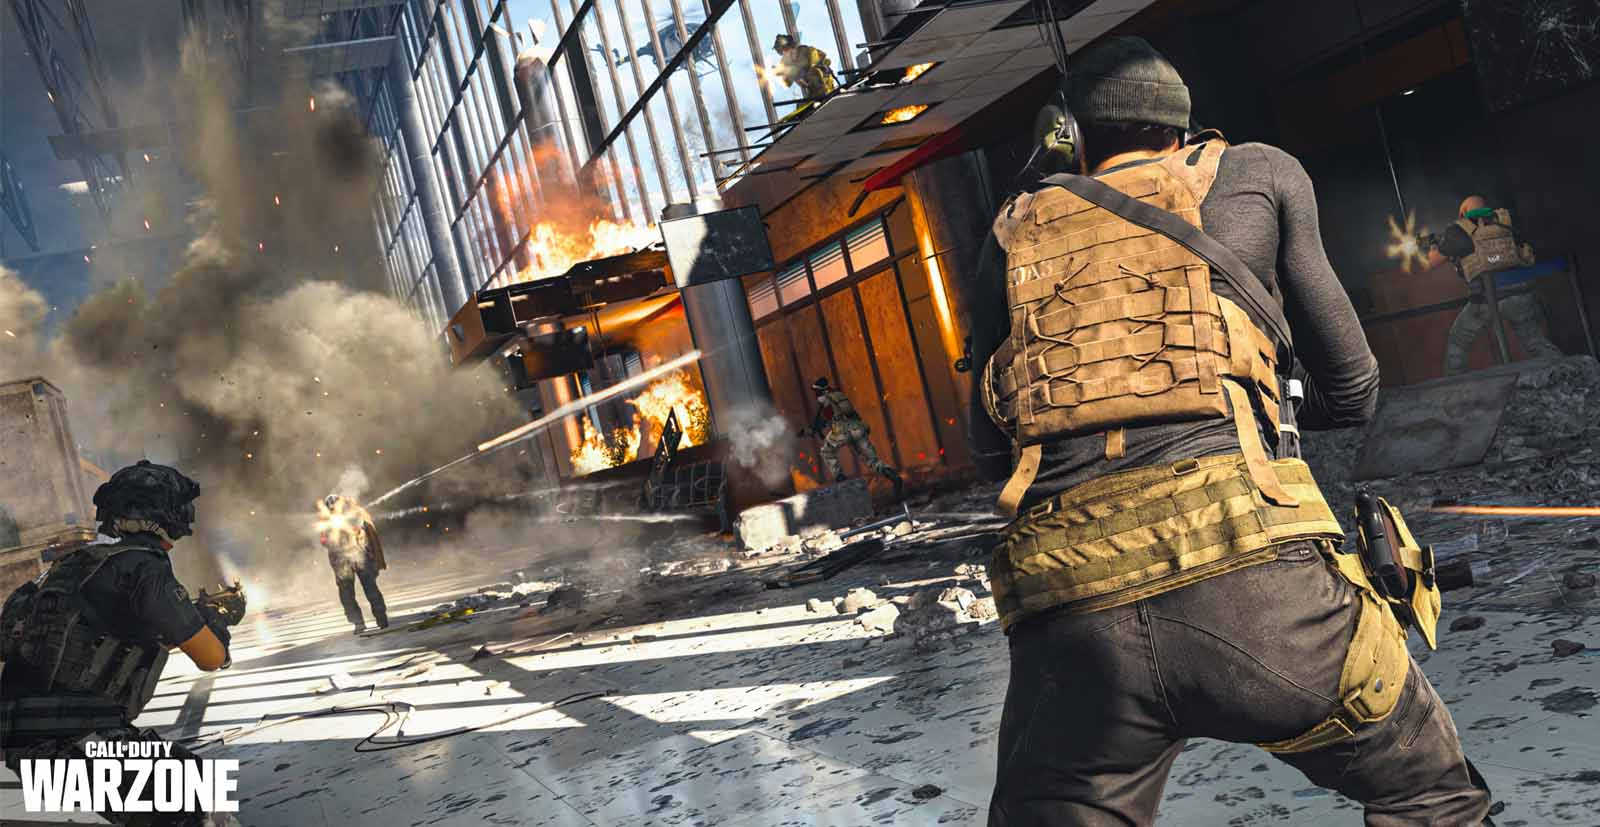 Call Of Duty Warzone Boasts 30 Million Players In 10 Days